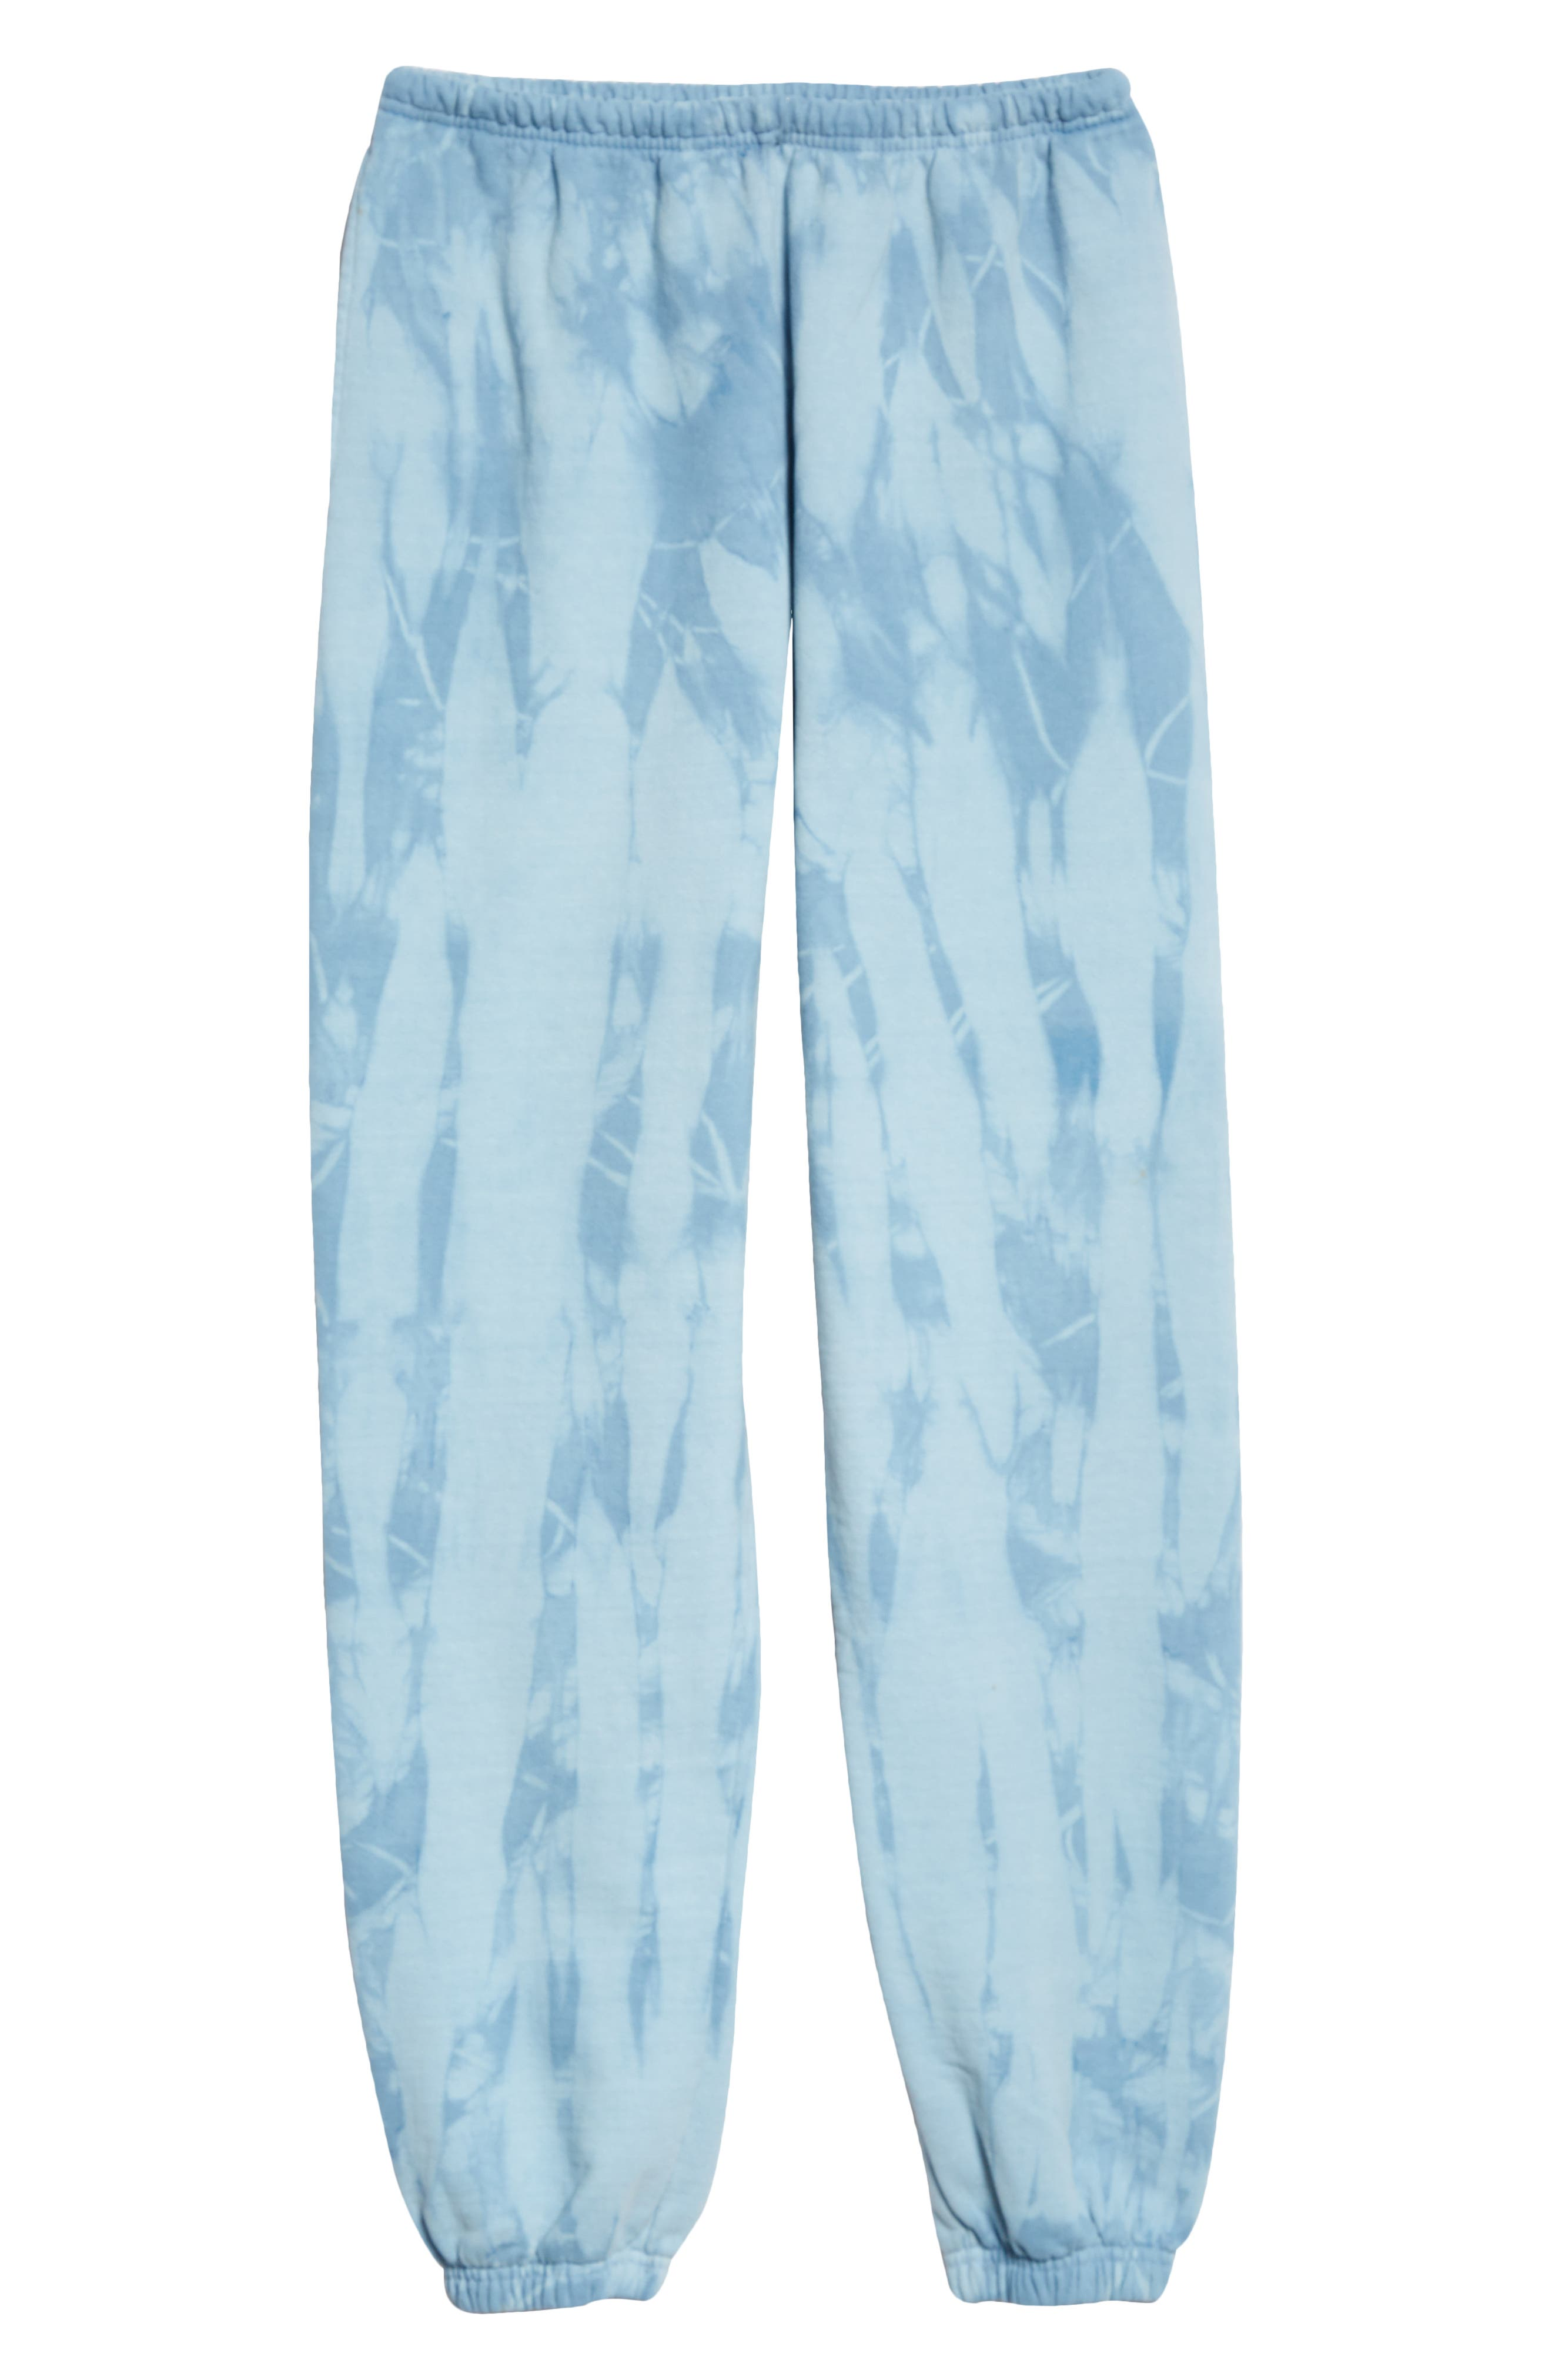 Oatmeal Recycled Cotton Sweatpants